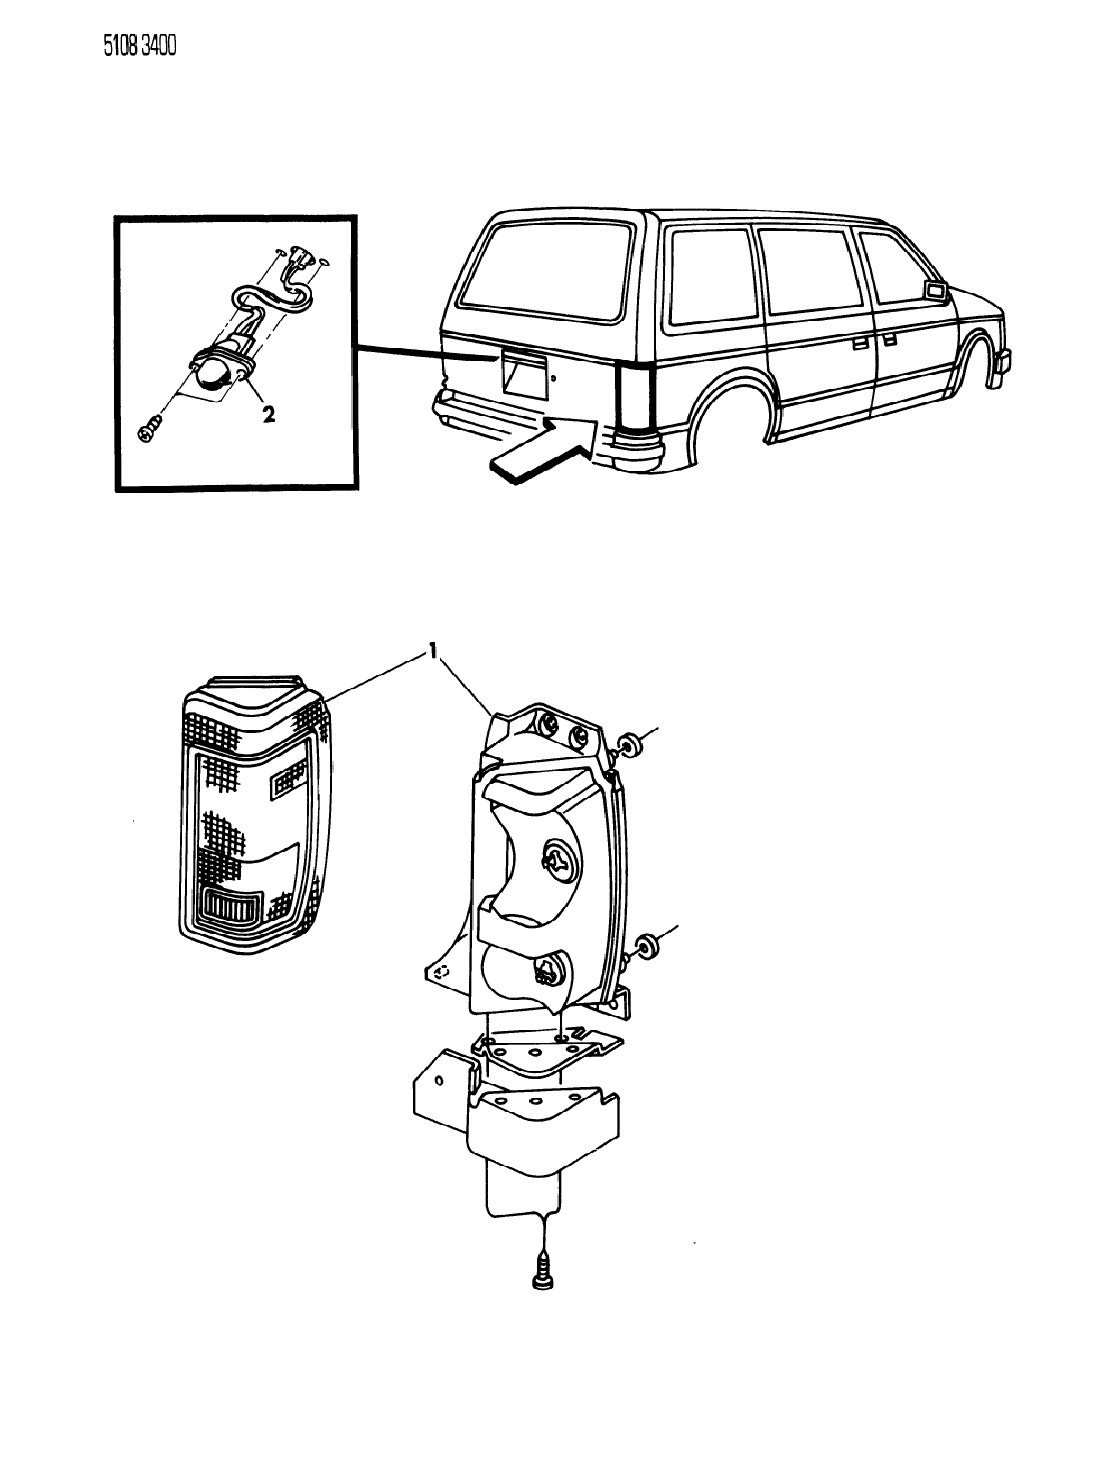 1985 Dodge Caravan Wiring Diagram